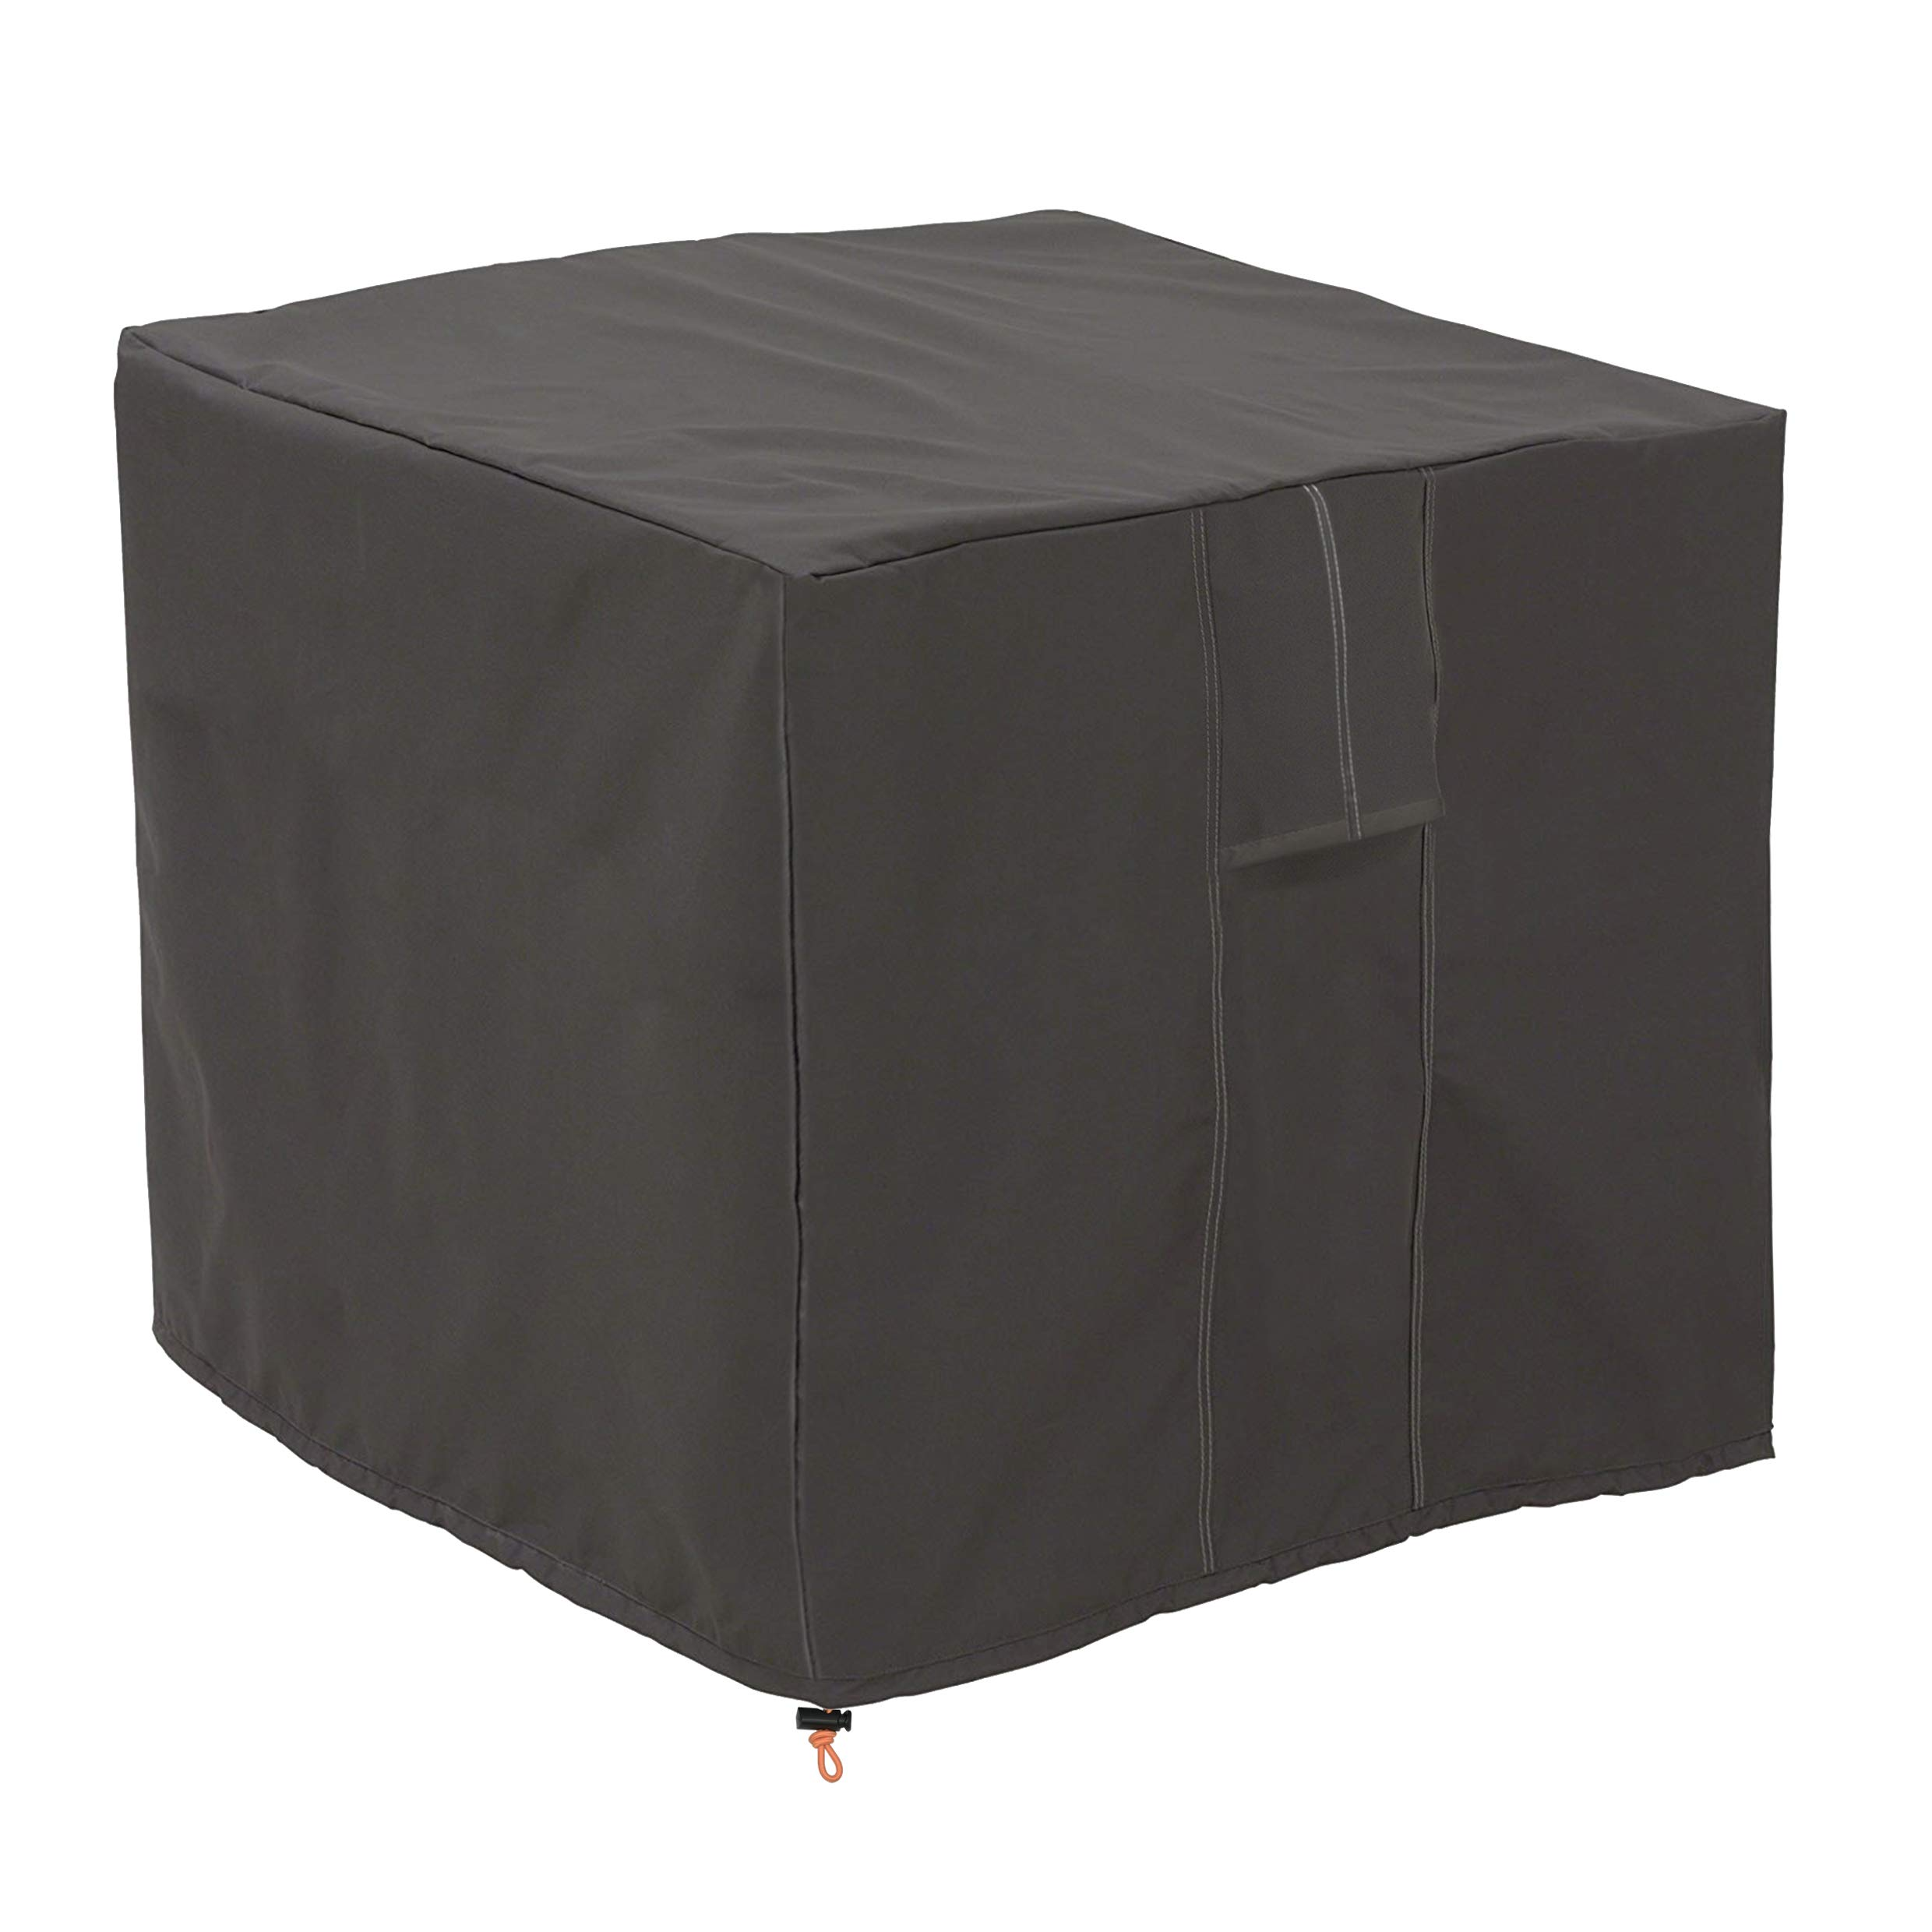 Foozet Central Air Conditioner Covers for Outside Units Square, 34x34x30